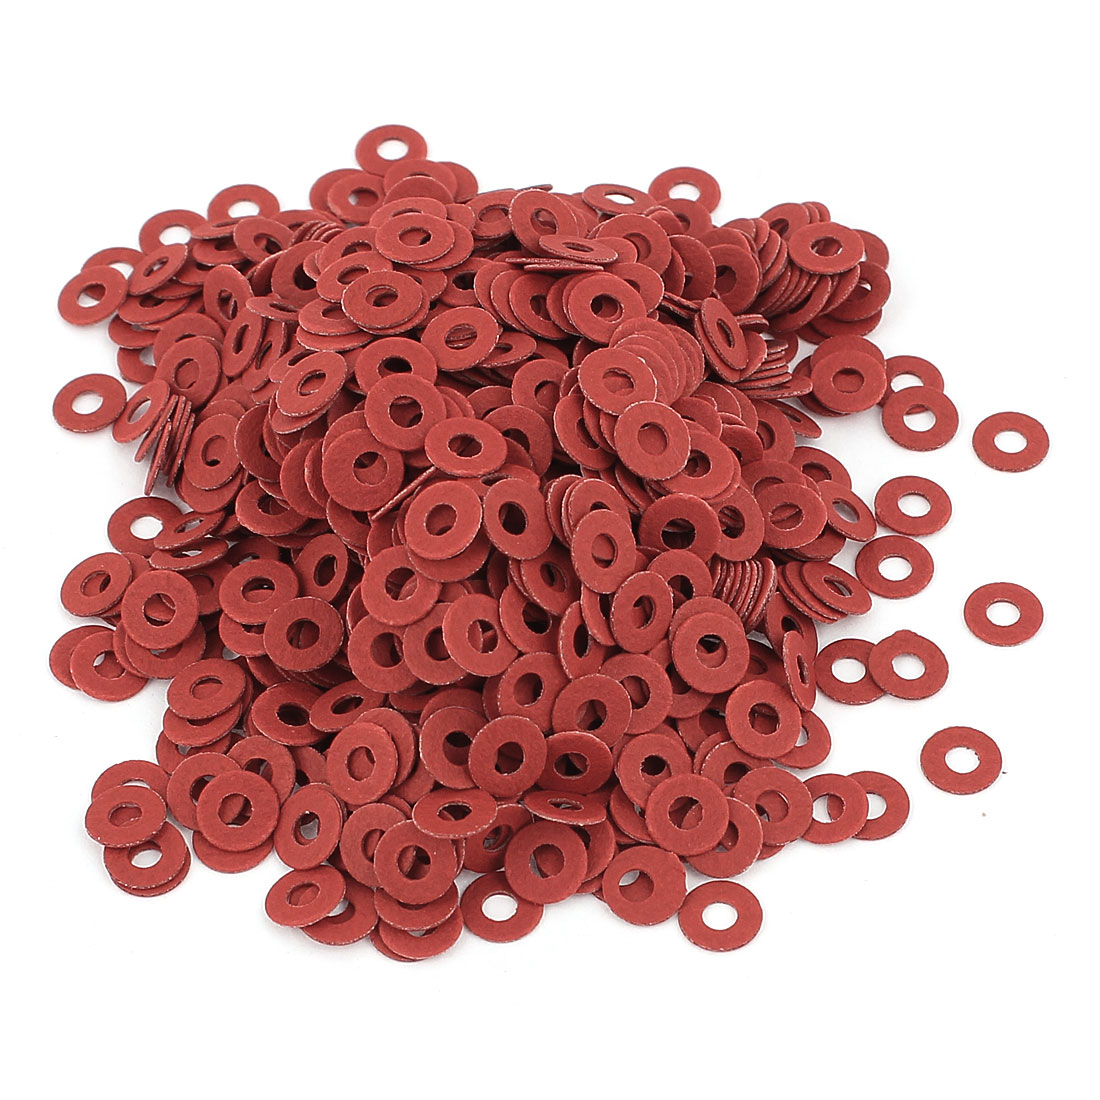 Fiber Flat Insulating Washer Ring 2.5mmx6mmx0.5mm 1000Pcs Red for Screws